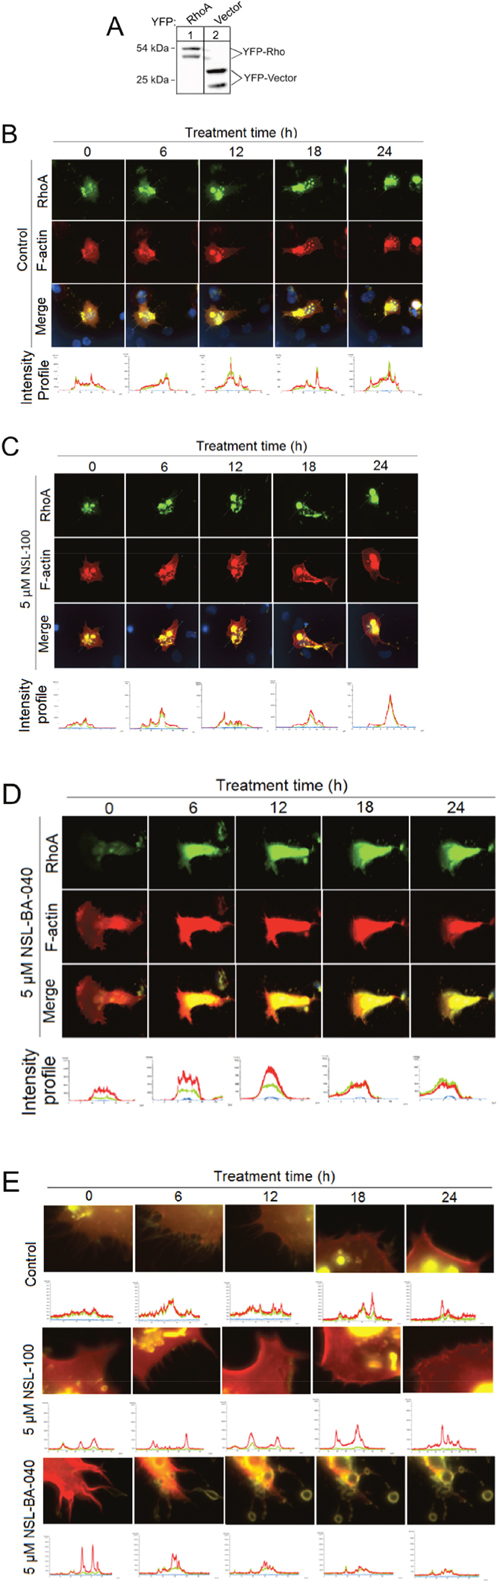 PCAIs decouple RhoA/F-actin intensity profiles, induce exocytosis and loss of F-actin and disrupt Filopodia in H1299 cells.